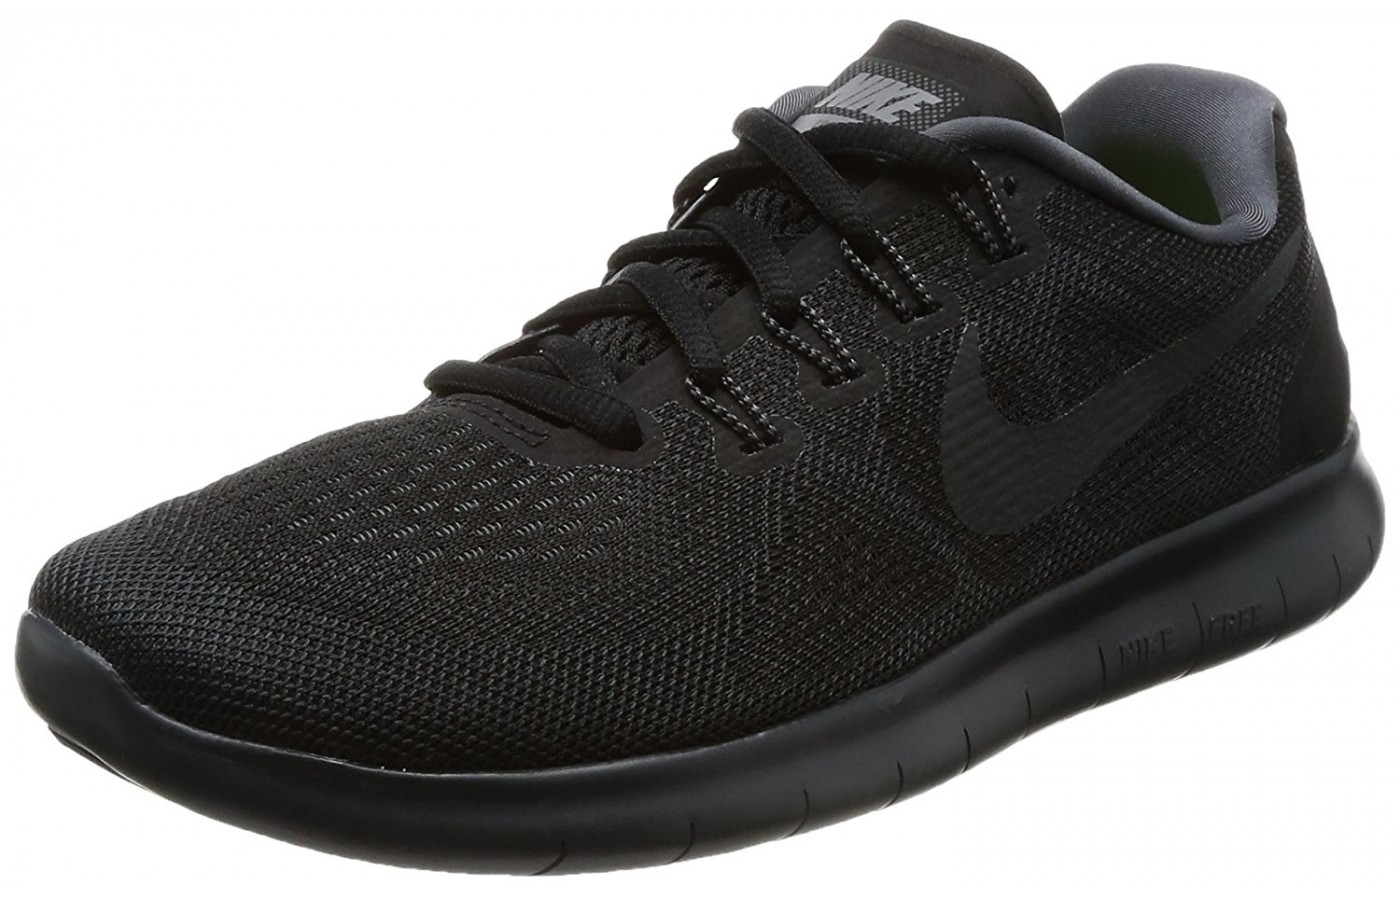 5b9d7c70229 Nike Free RN 2019 Reviewed   Tested in 2019